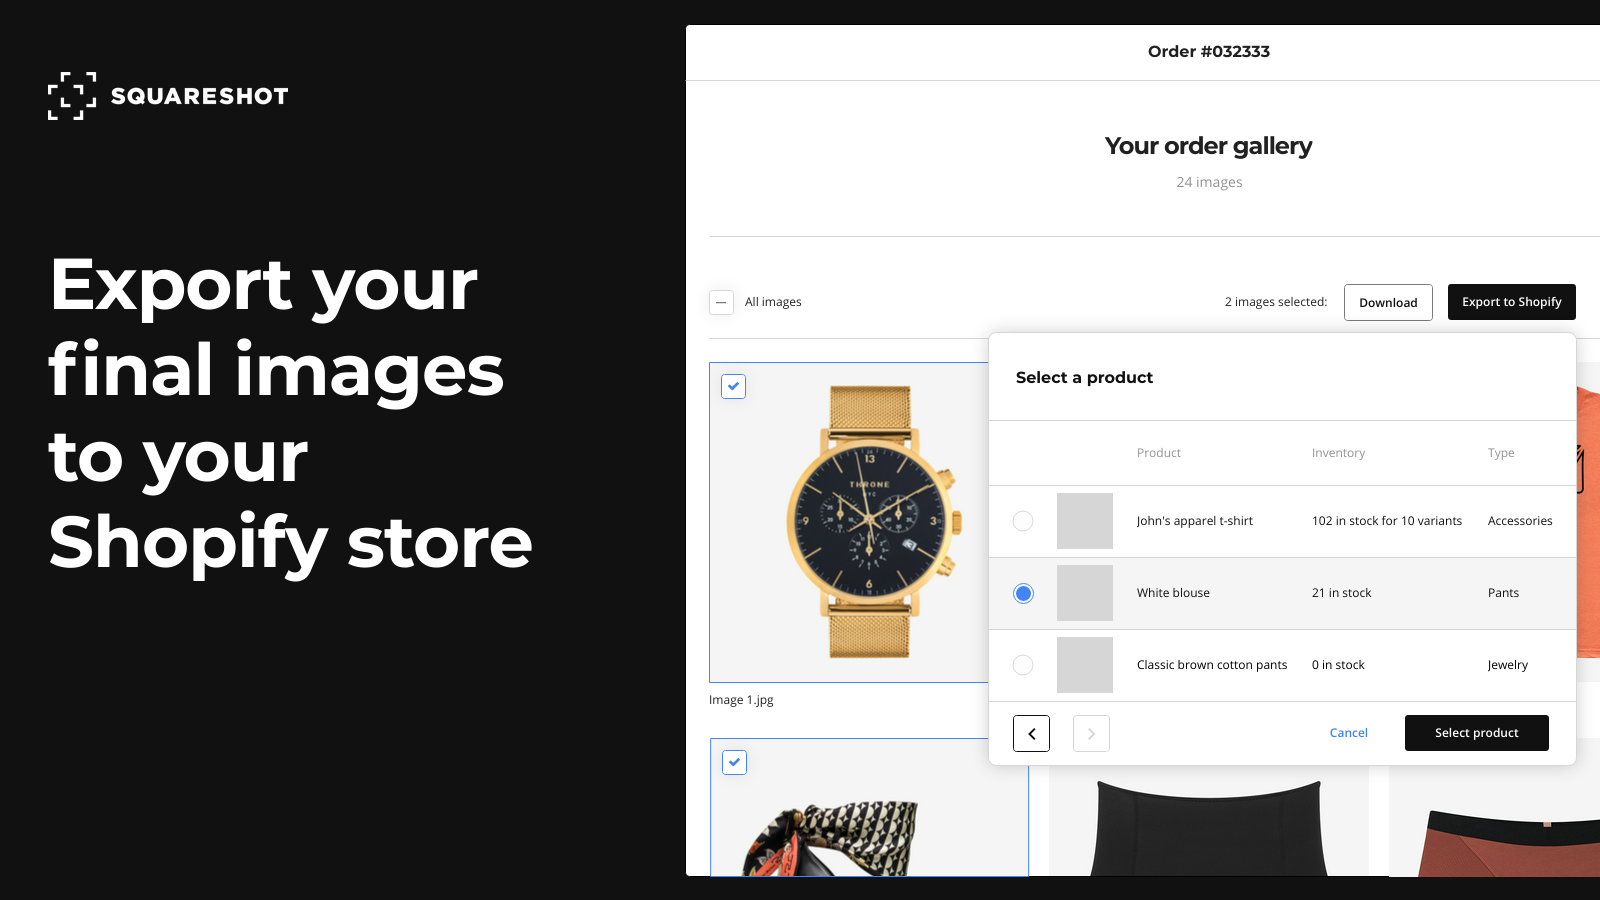 Export product images to your Shopify store